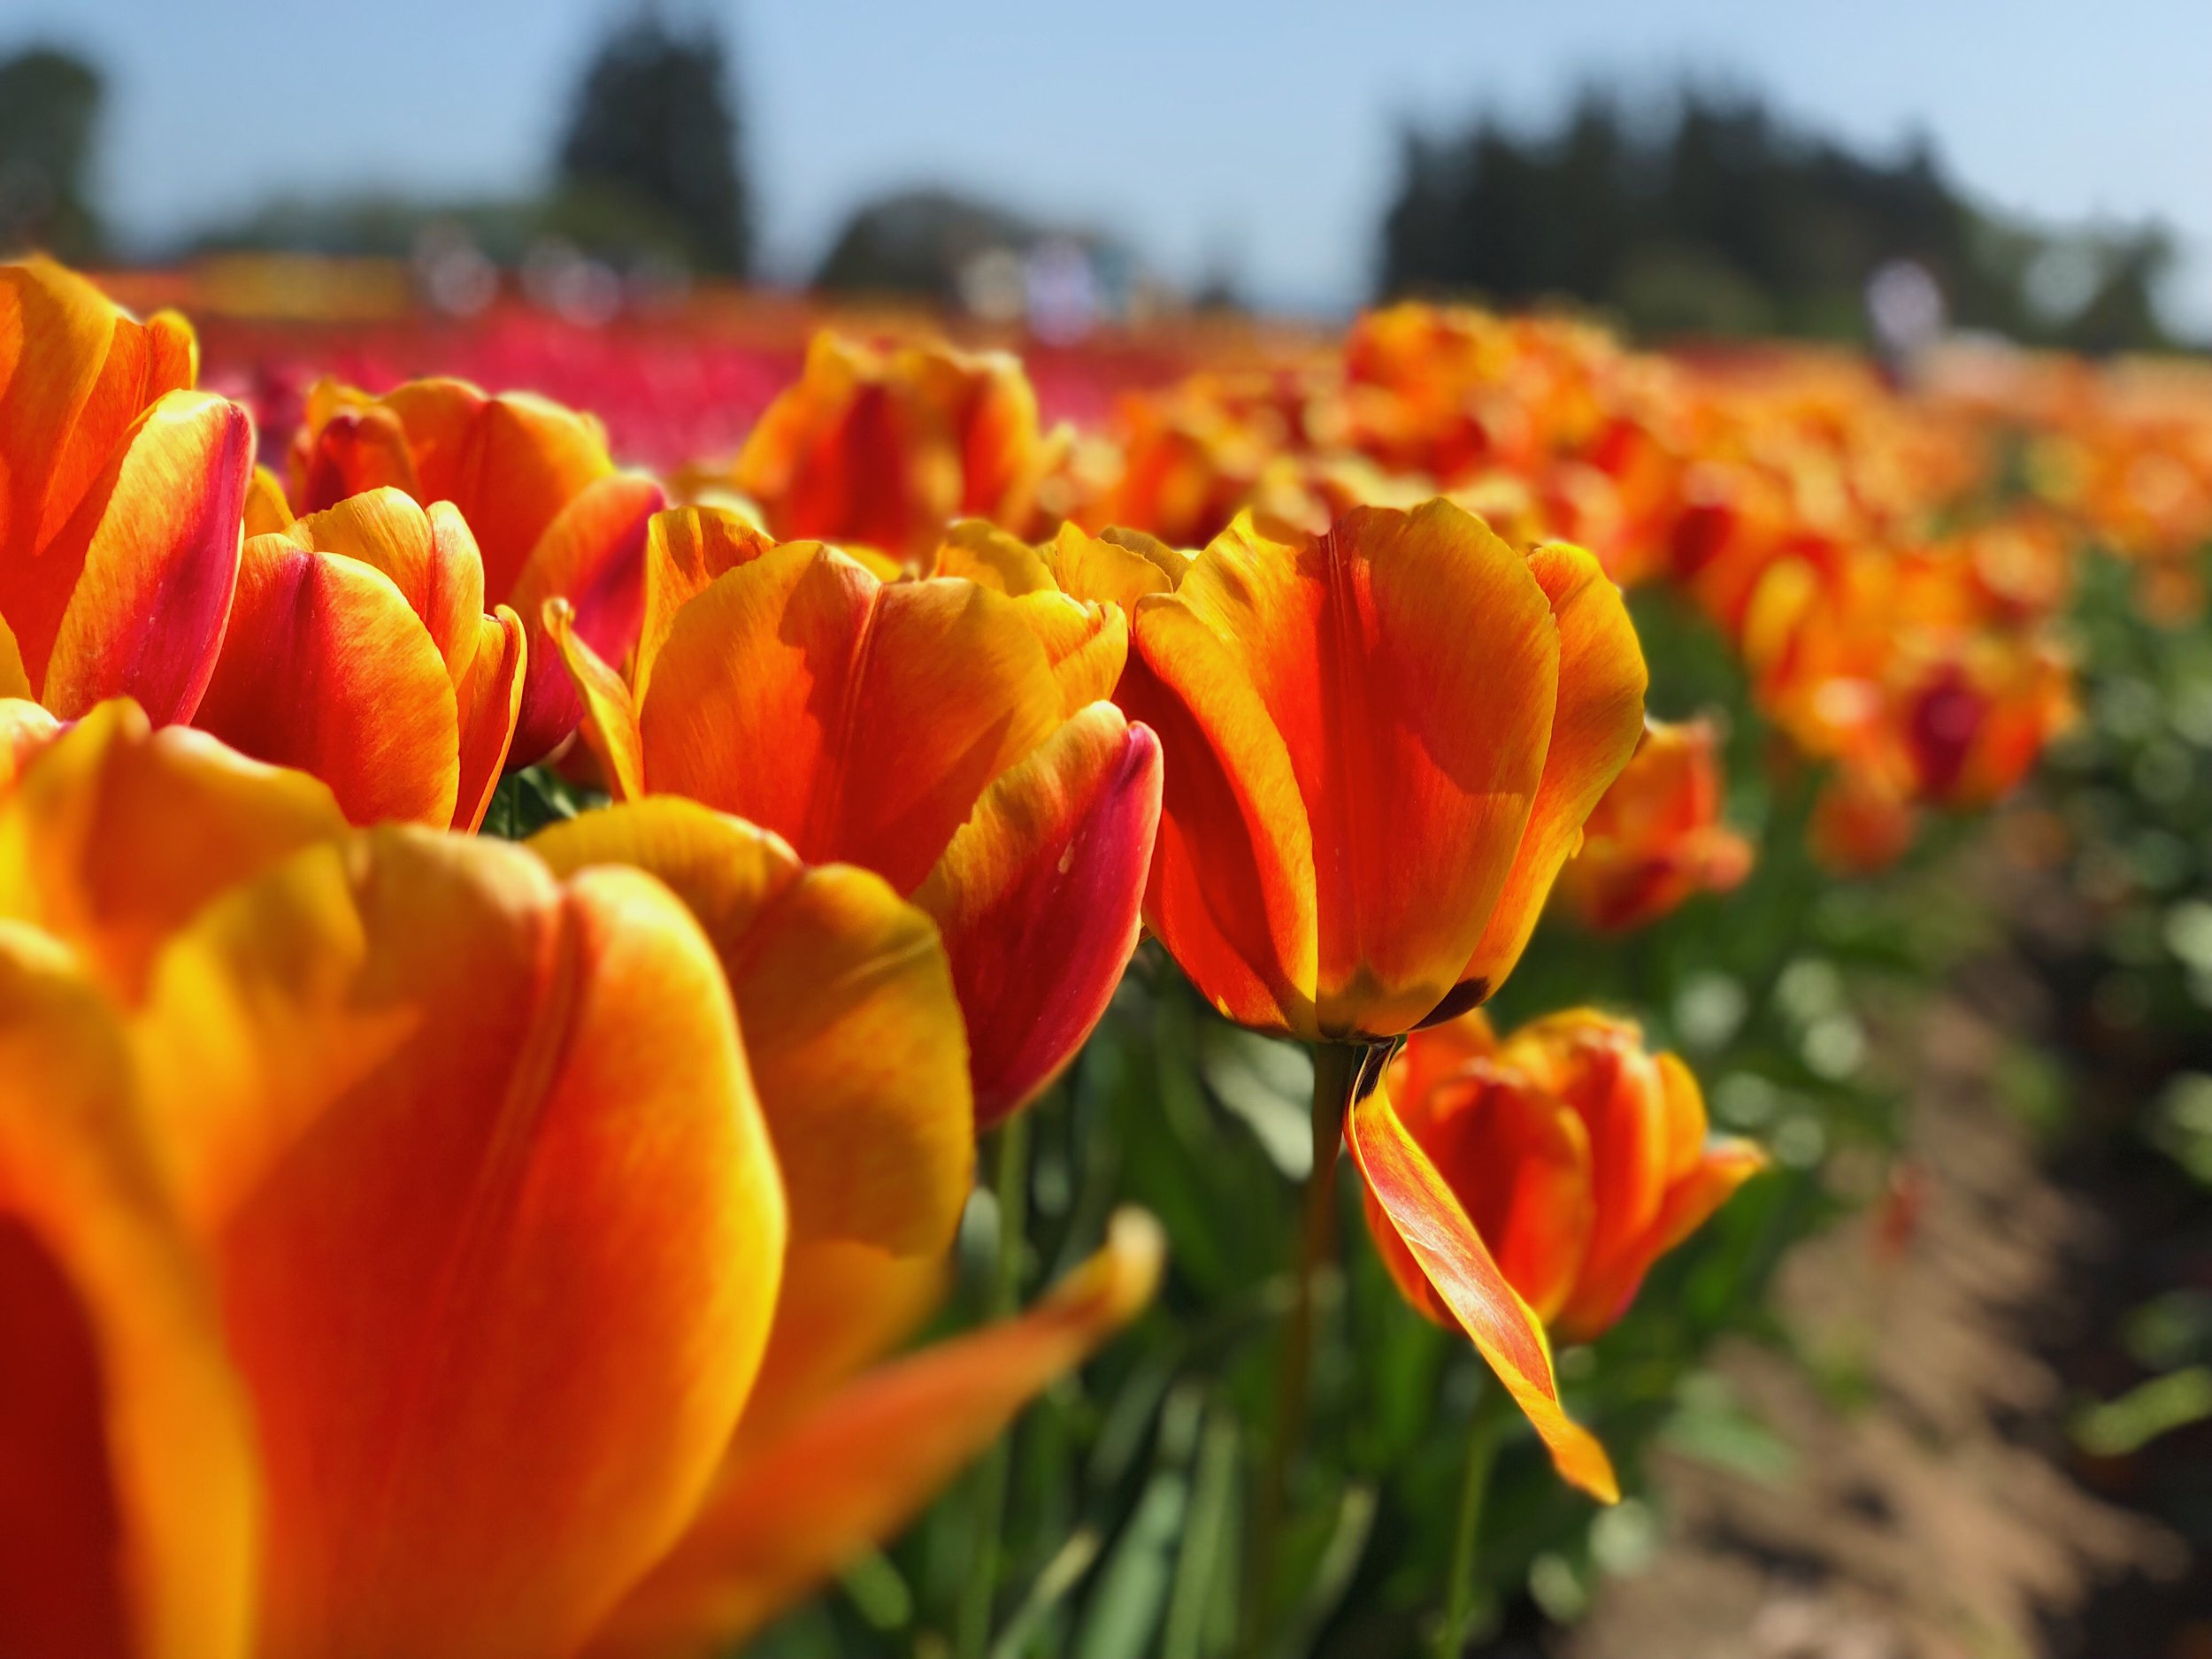 Oregon Bucket List - Top Things To Do in Oregon